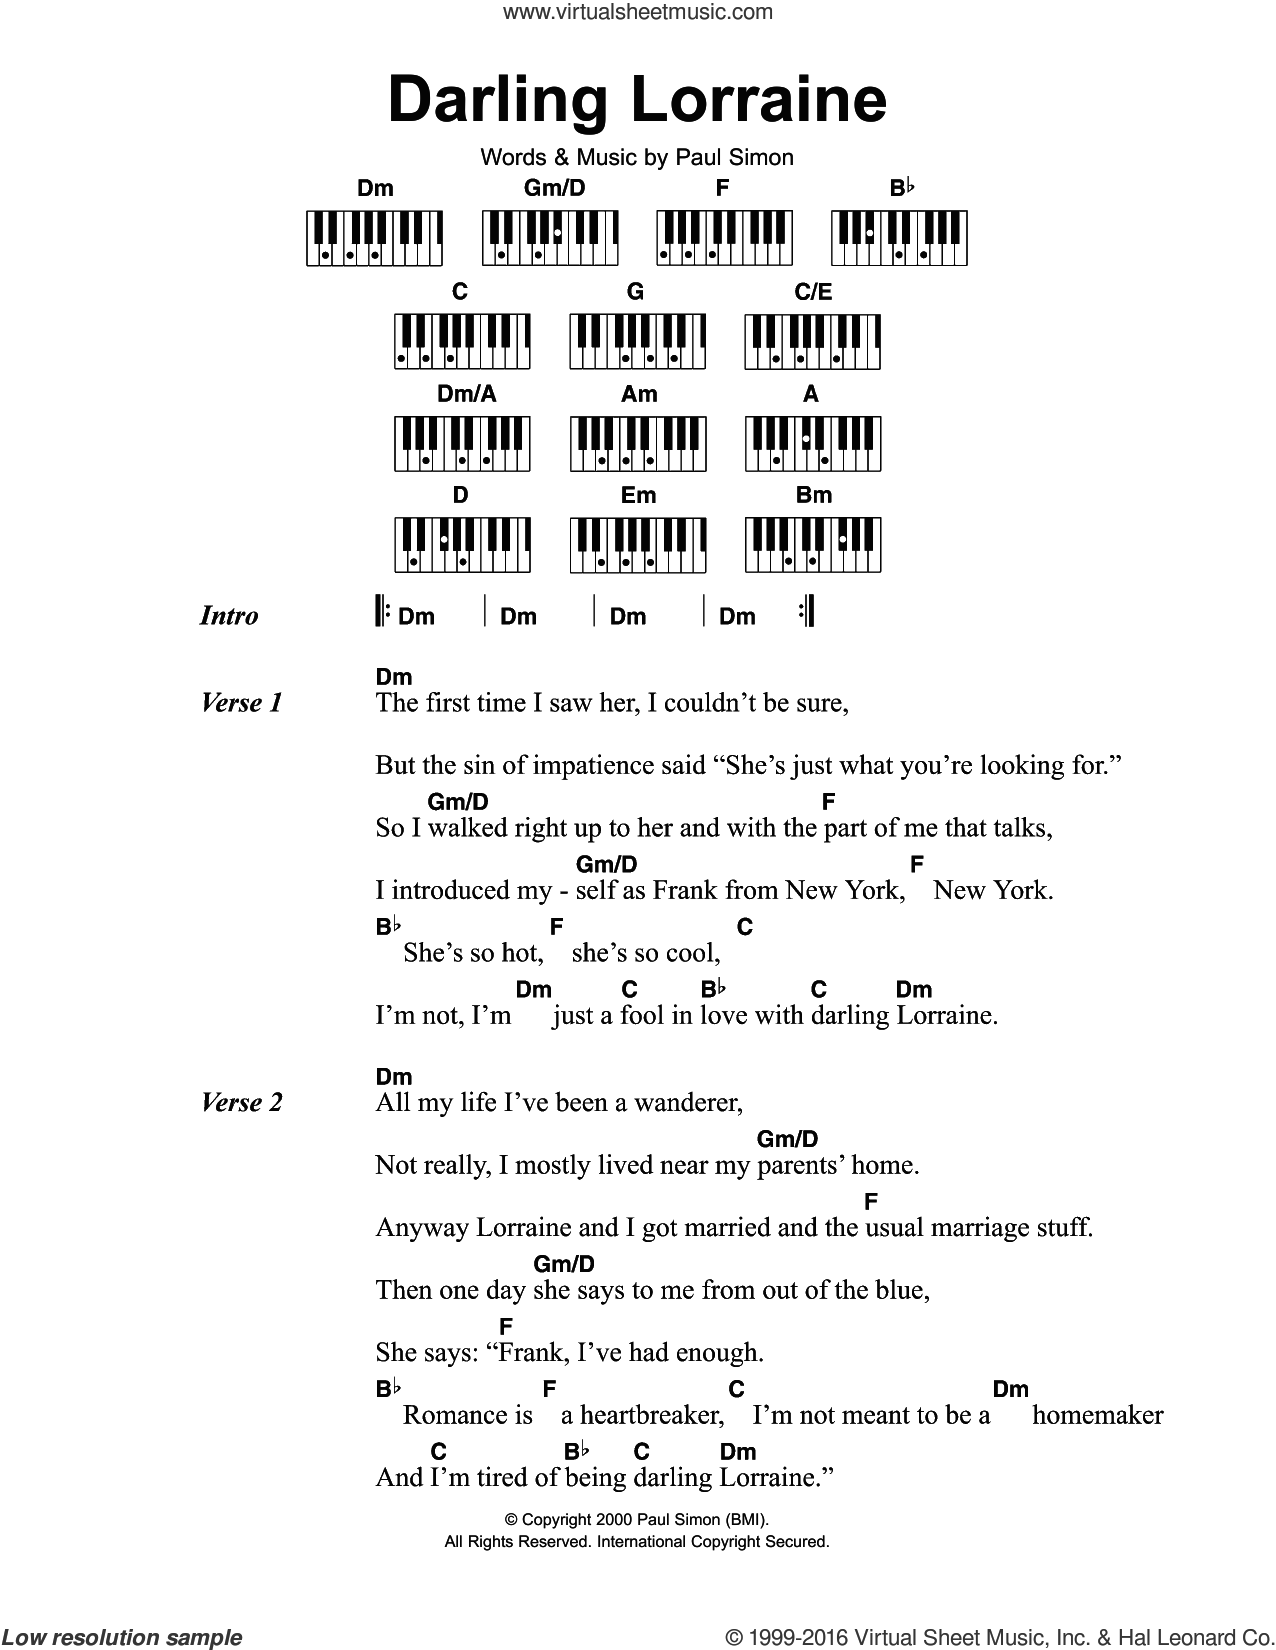 Darling Lorraine sheet music for piano solo (chords, lyrics, melody) by Paul Simon. Score Image Preview.